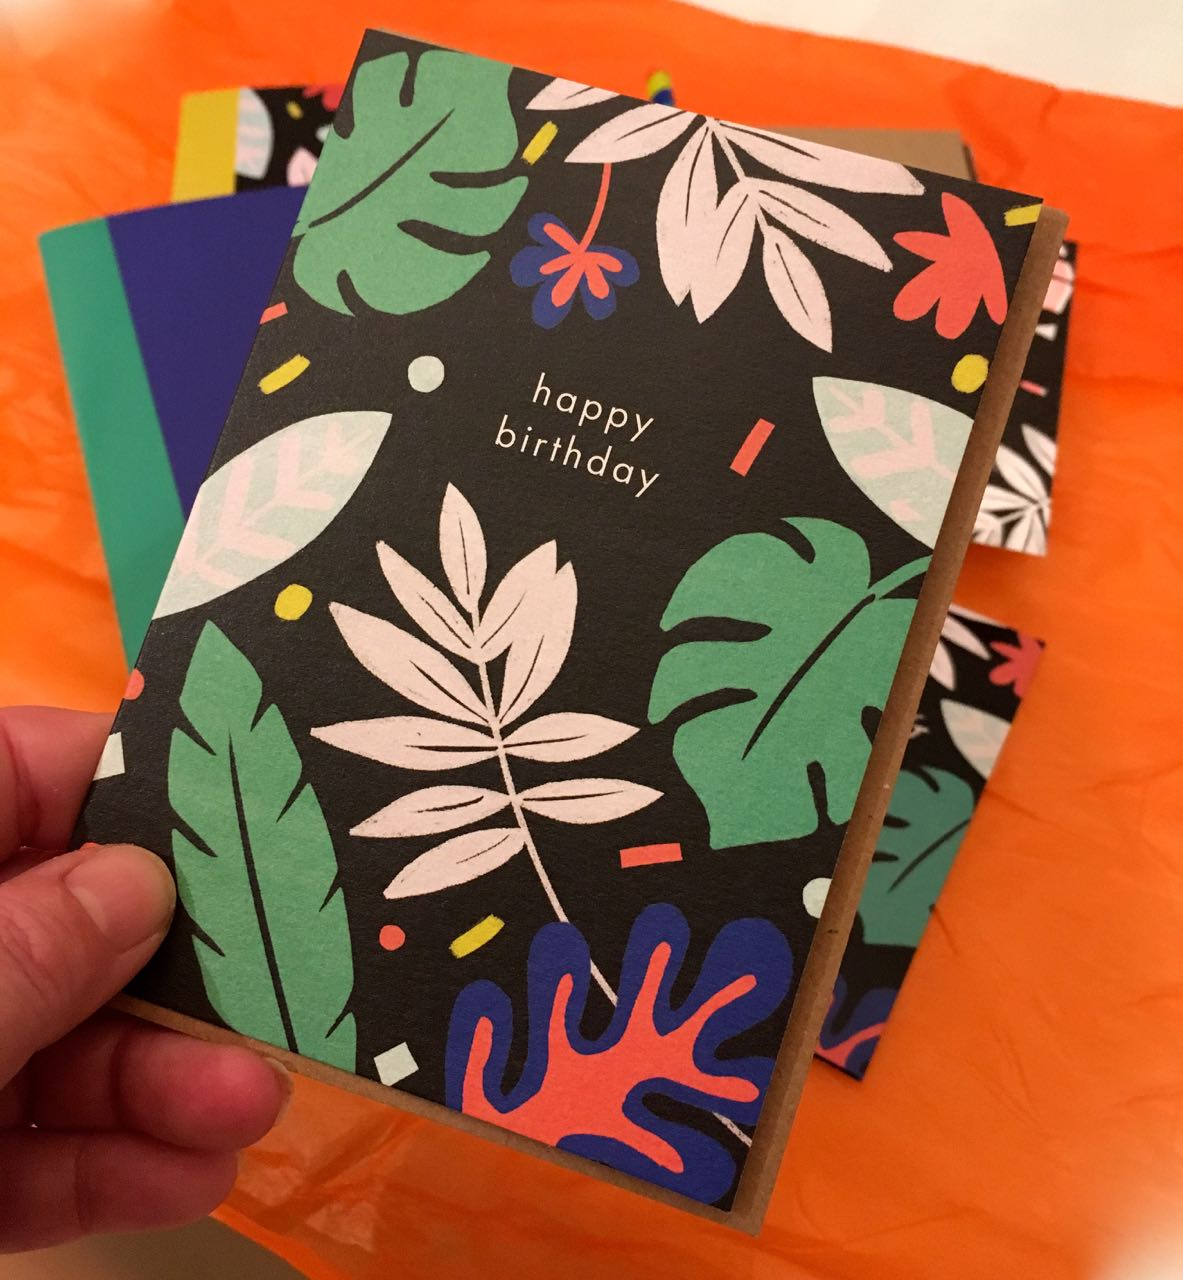 And a card to match too